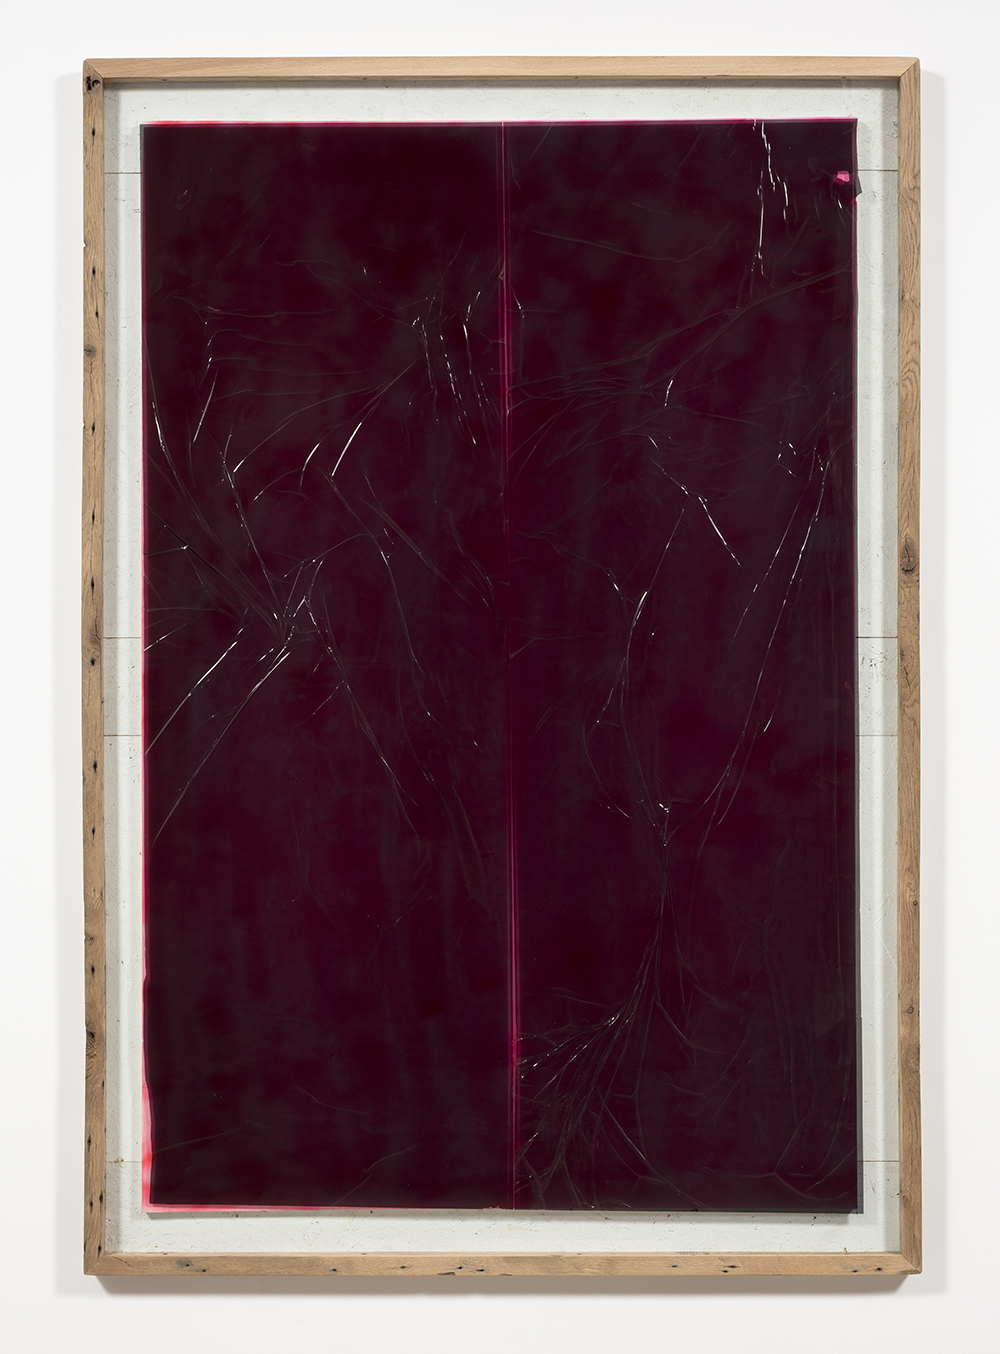 Graham Collins. <i>Magnolia</i>, 2019. Spray enamel on canvas, reclaimed wood, glass, window tint, 86 x 59 3/4 inches  (218.4 x 151.8 cm)